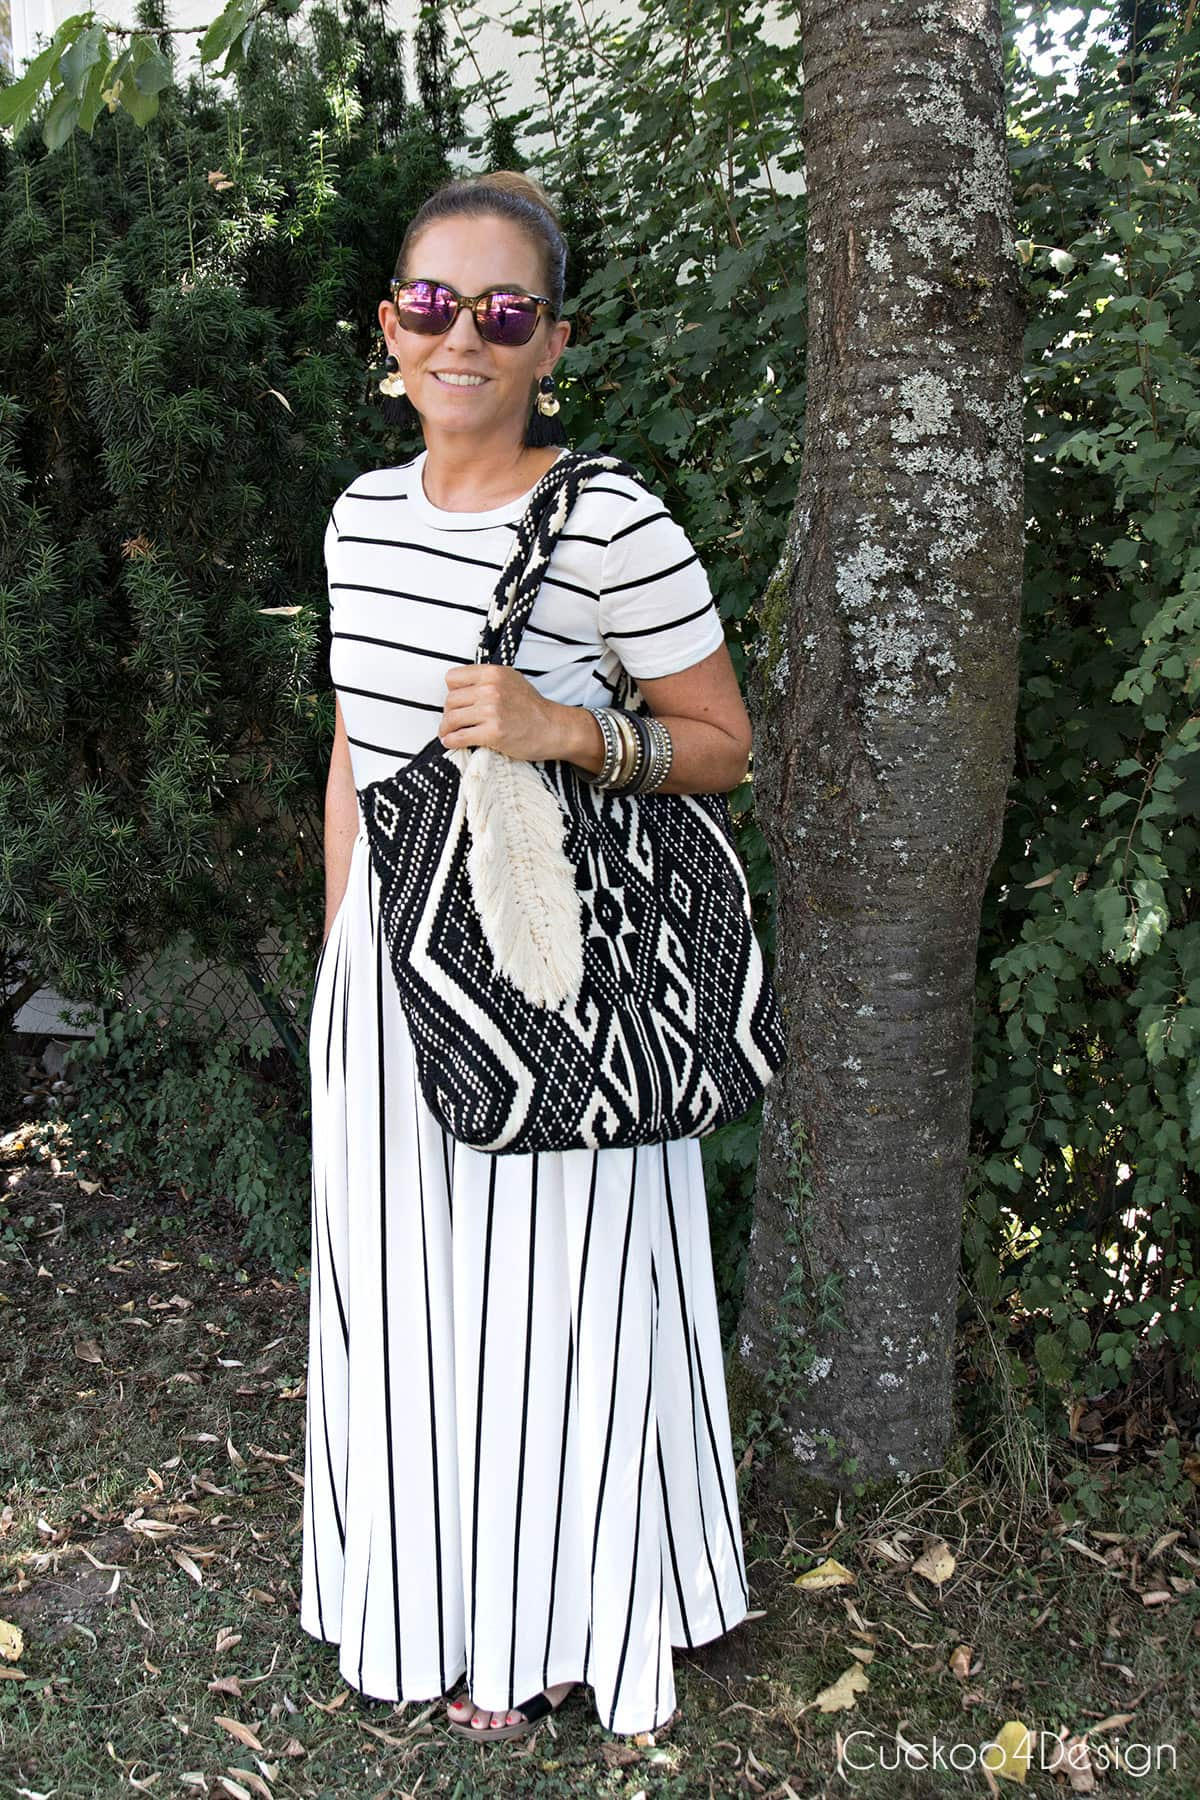 long black and white striped dress with shoulder bag and purse charms